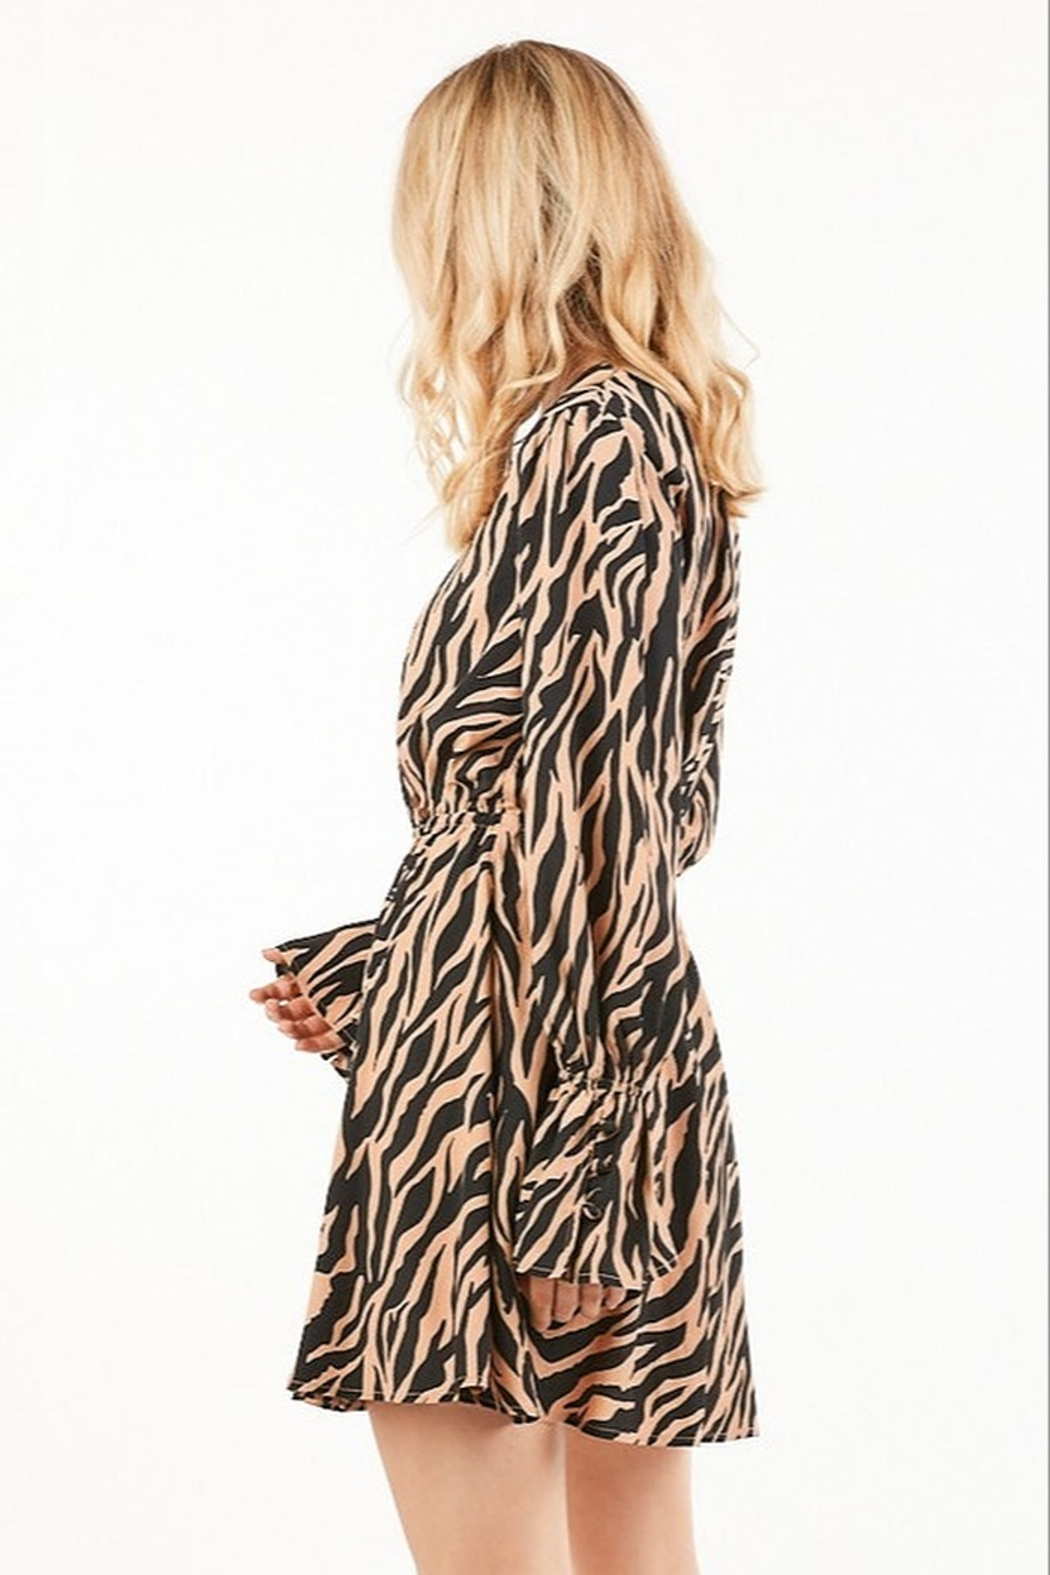 Very J Tiger Print Dress - Front Full Image